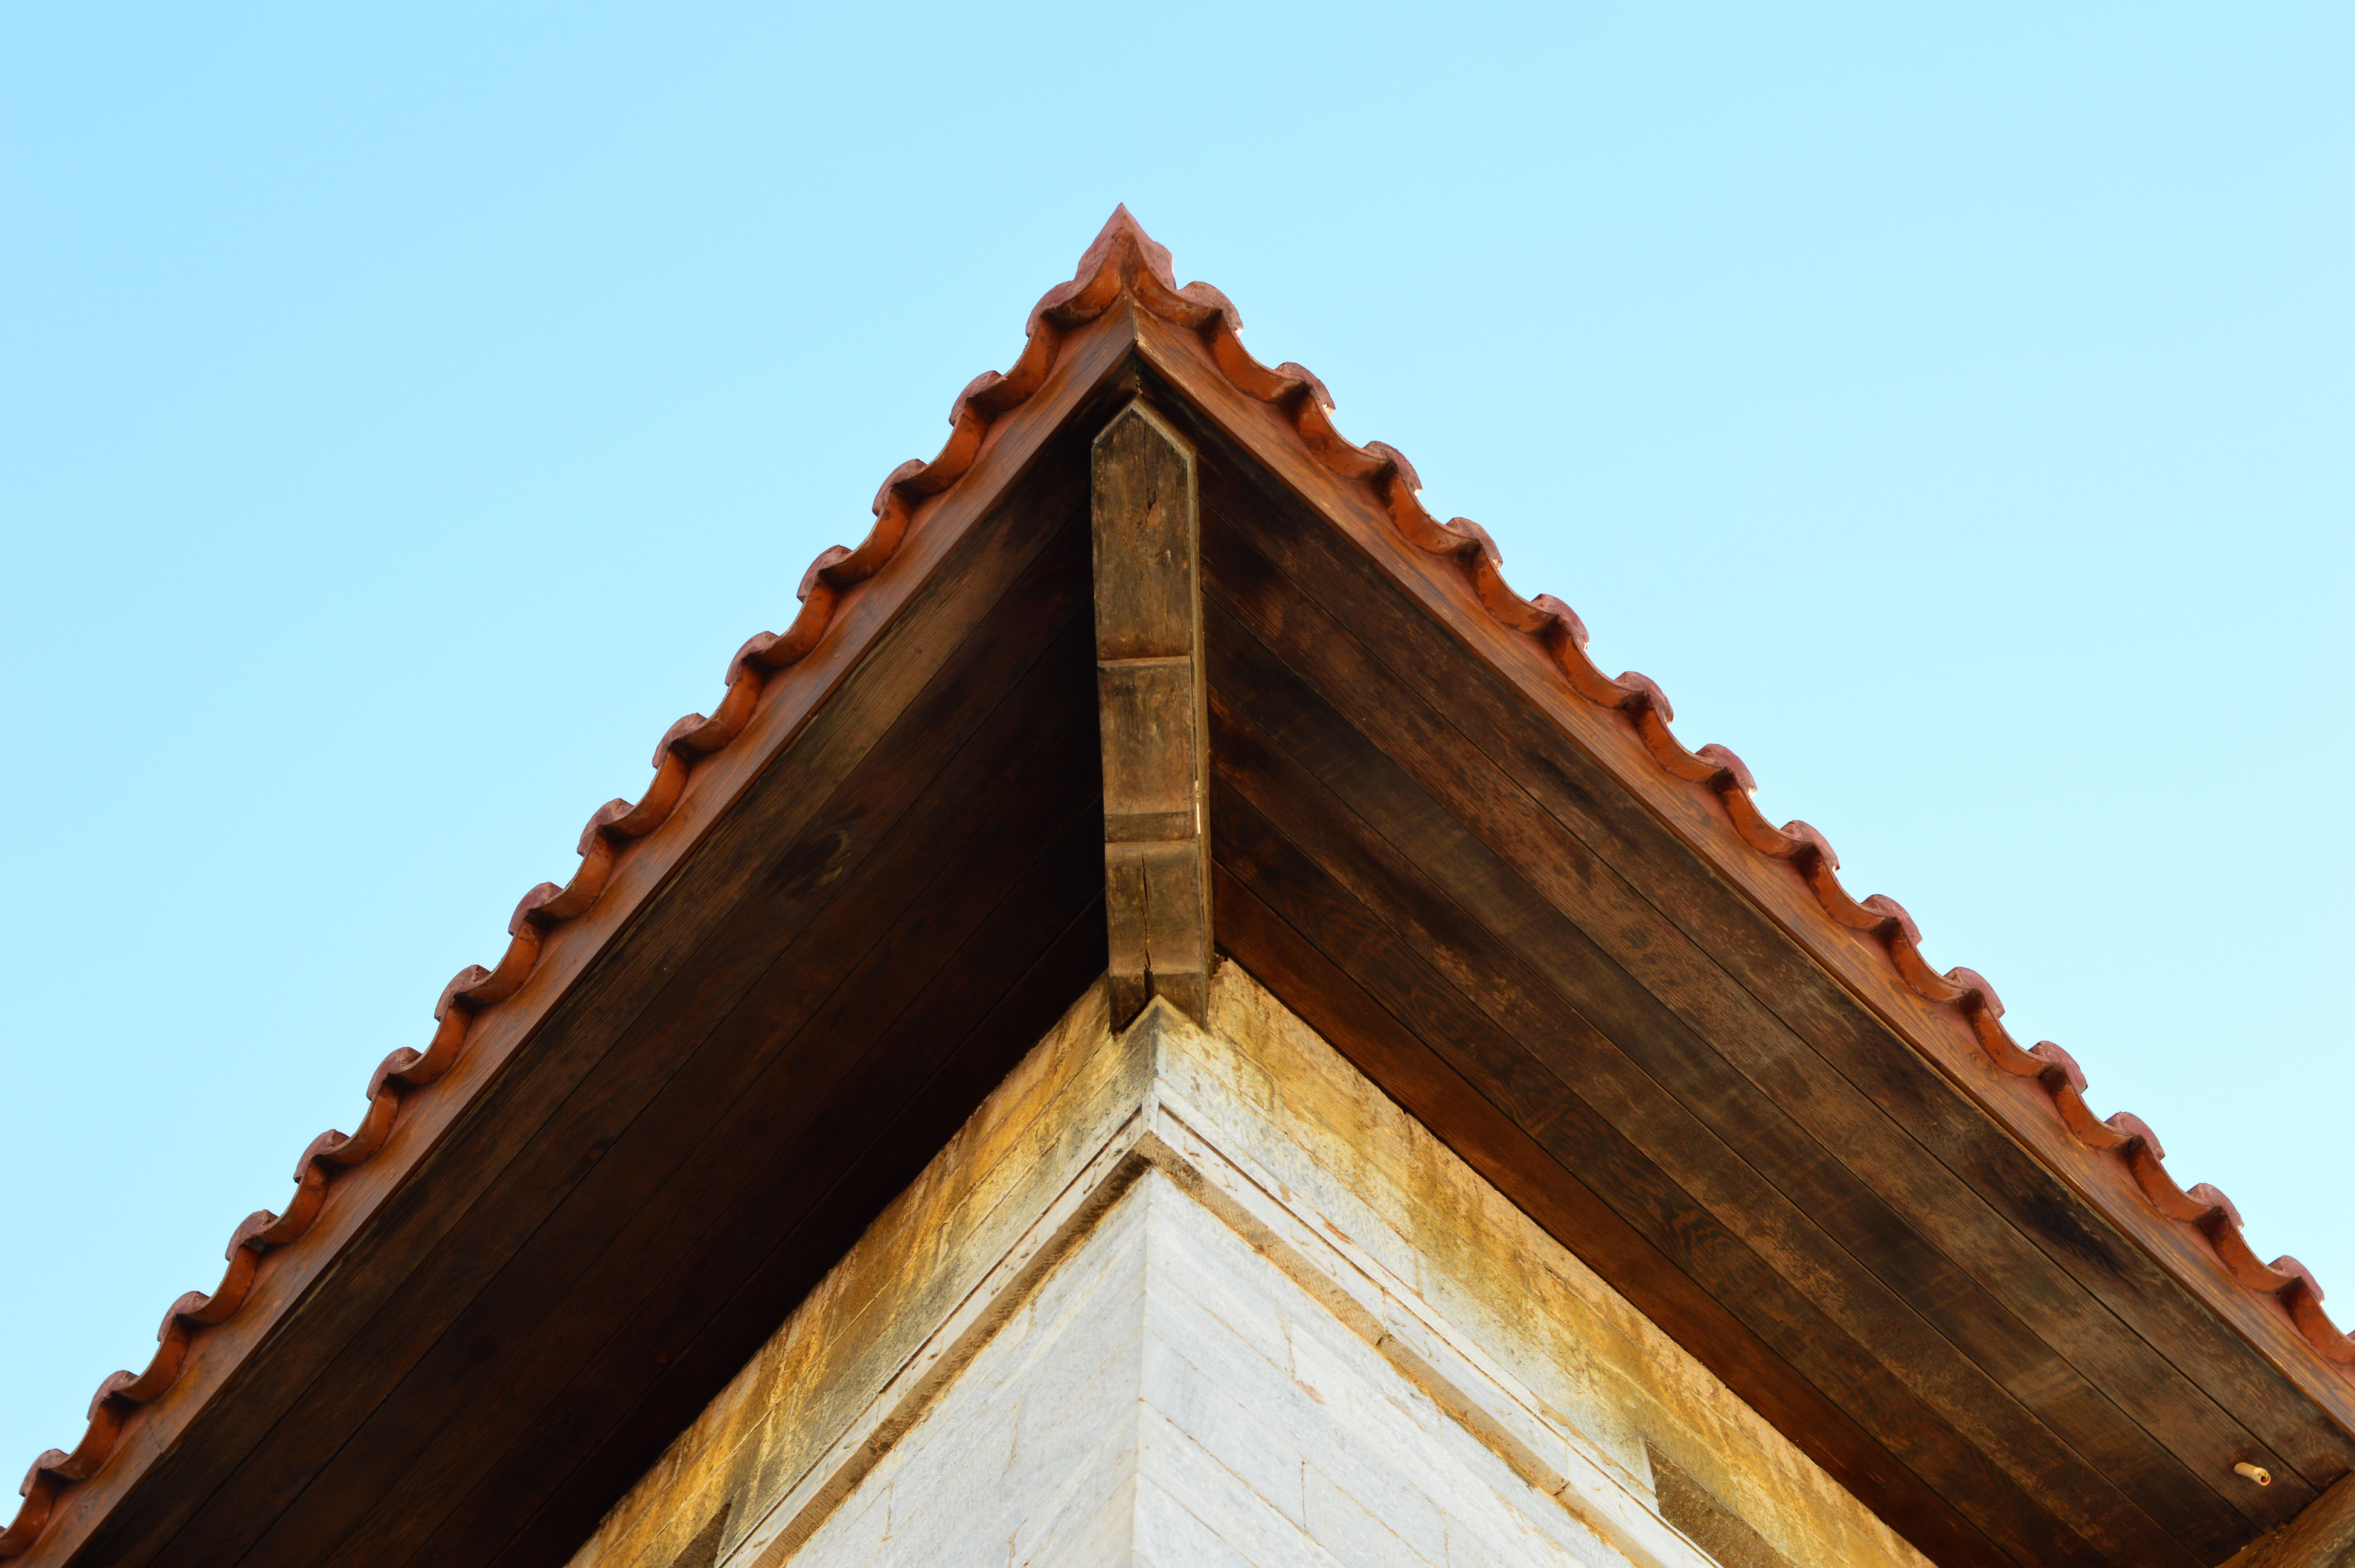 low angle view, architecture, built structure, building exterior, clear sky, day, roof, no people, outdoors, place of worship, sky